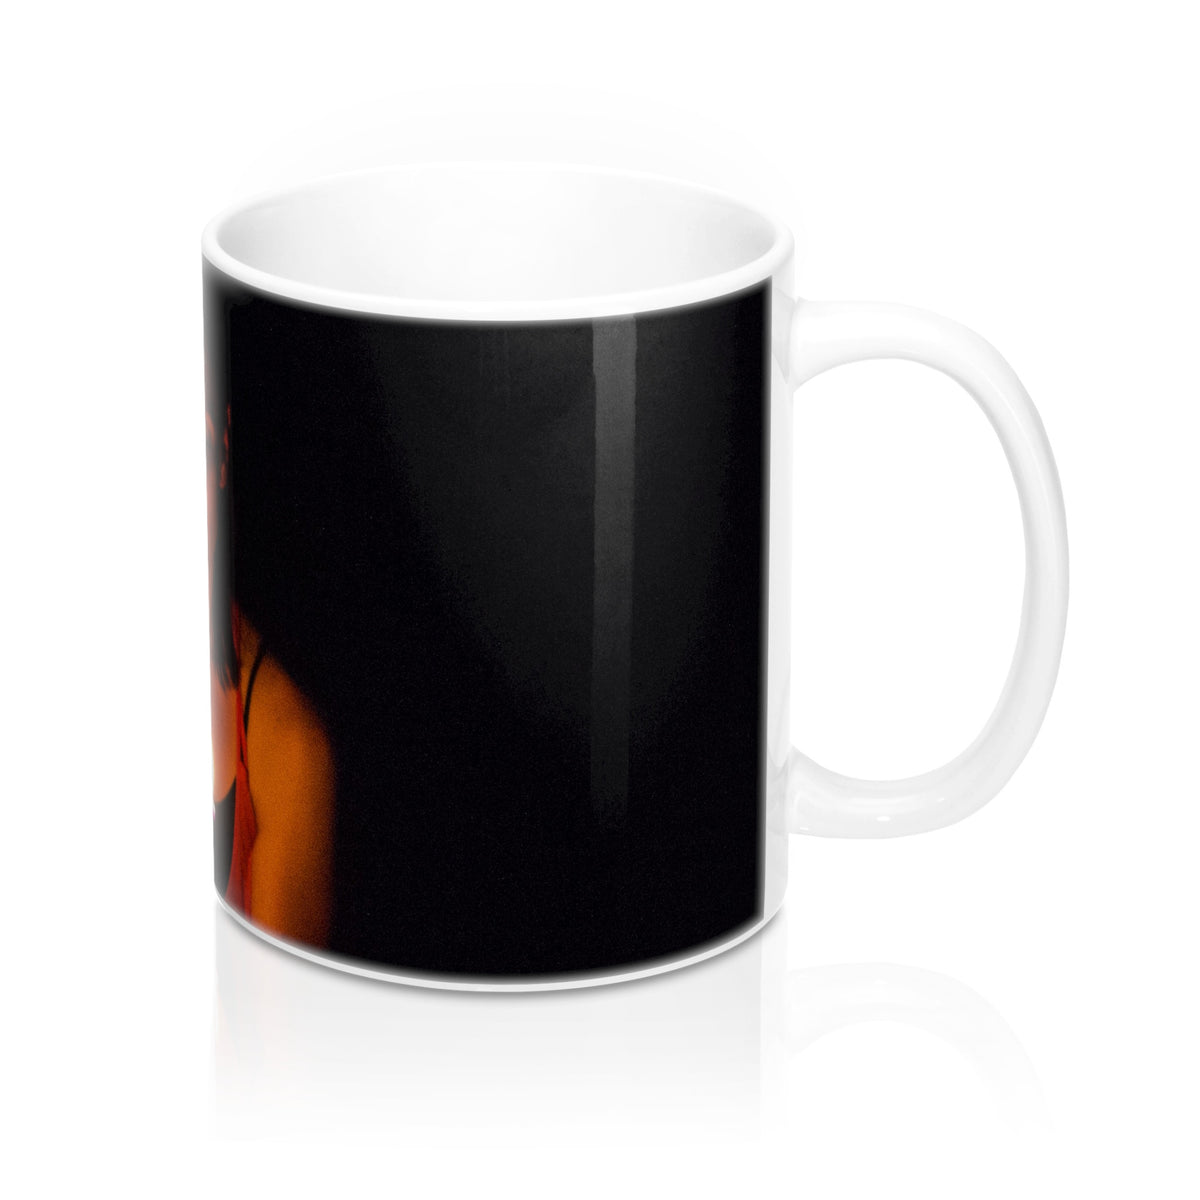 Memories of a Lullaby - Light (Mug) - Saras Feijoo